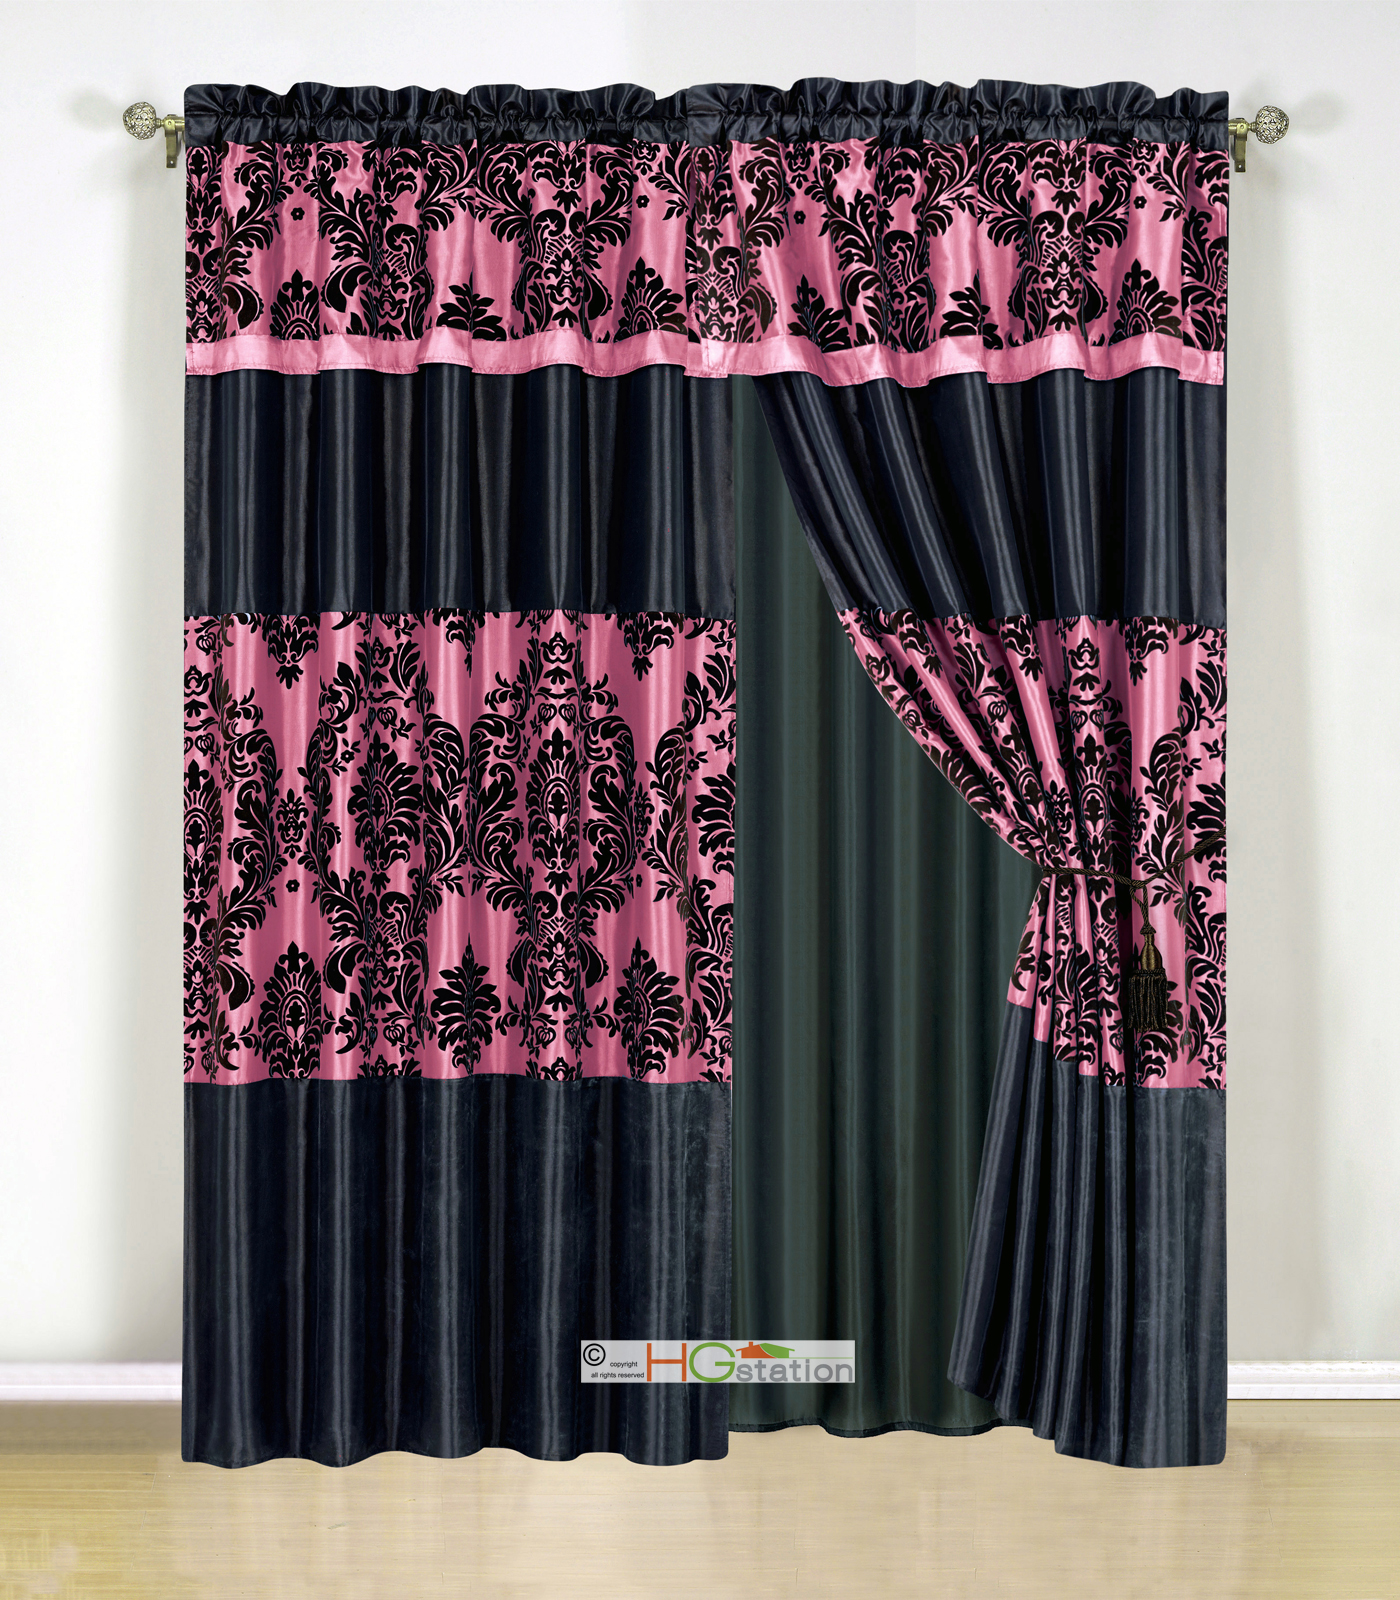 damask striped curtain set hot pink black valance drape ebay